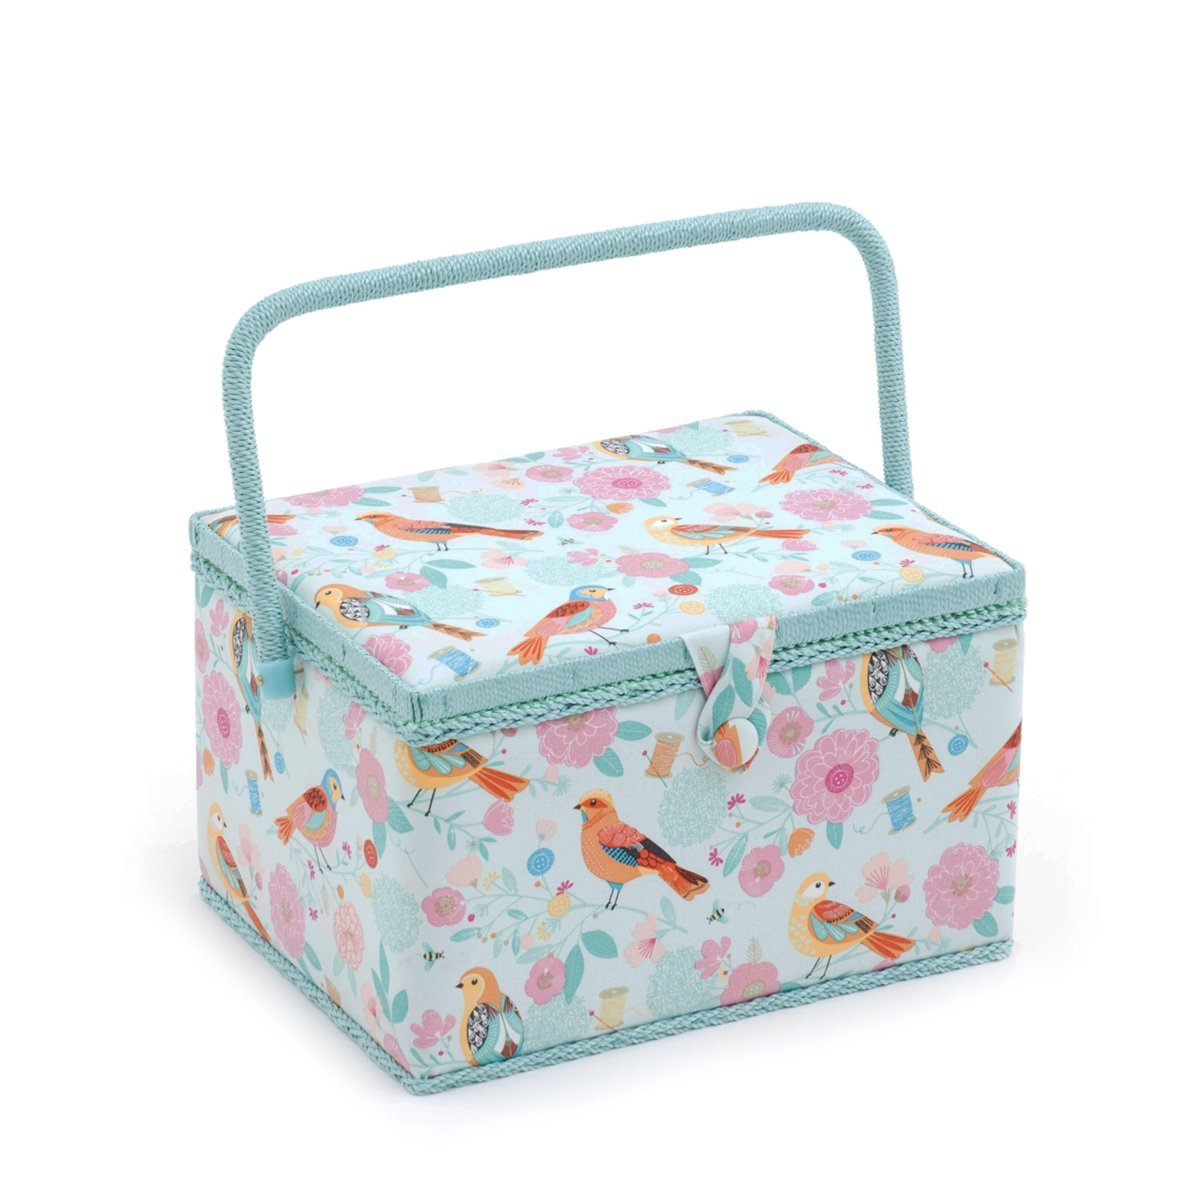 Hobby Gift 'Birdsong' Large Rectangle Sewing Box 23.5 x 31 x 20cm (d/w/h) by Hobby Gift